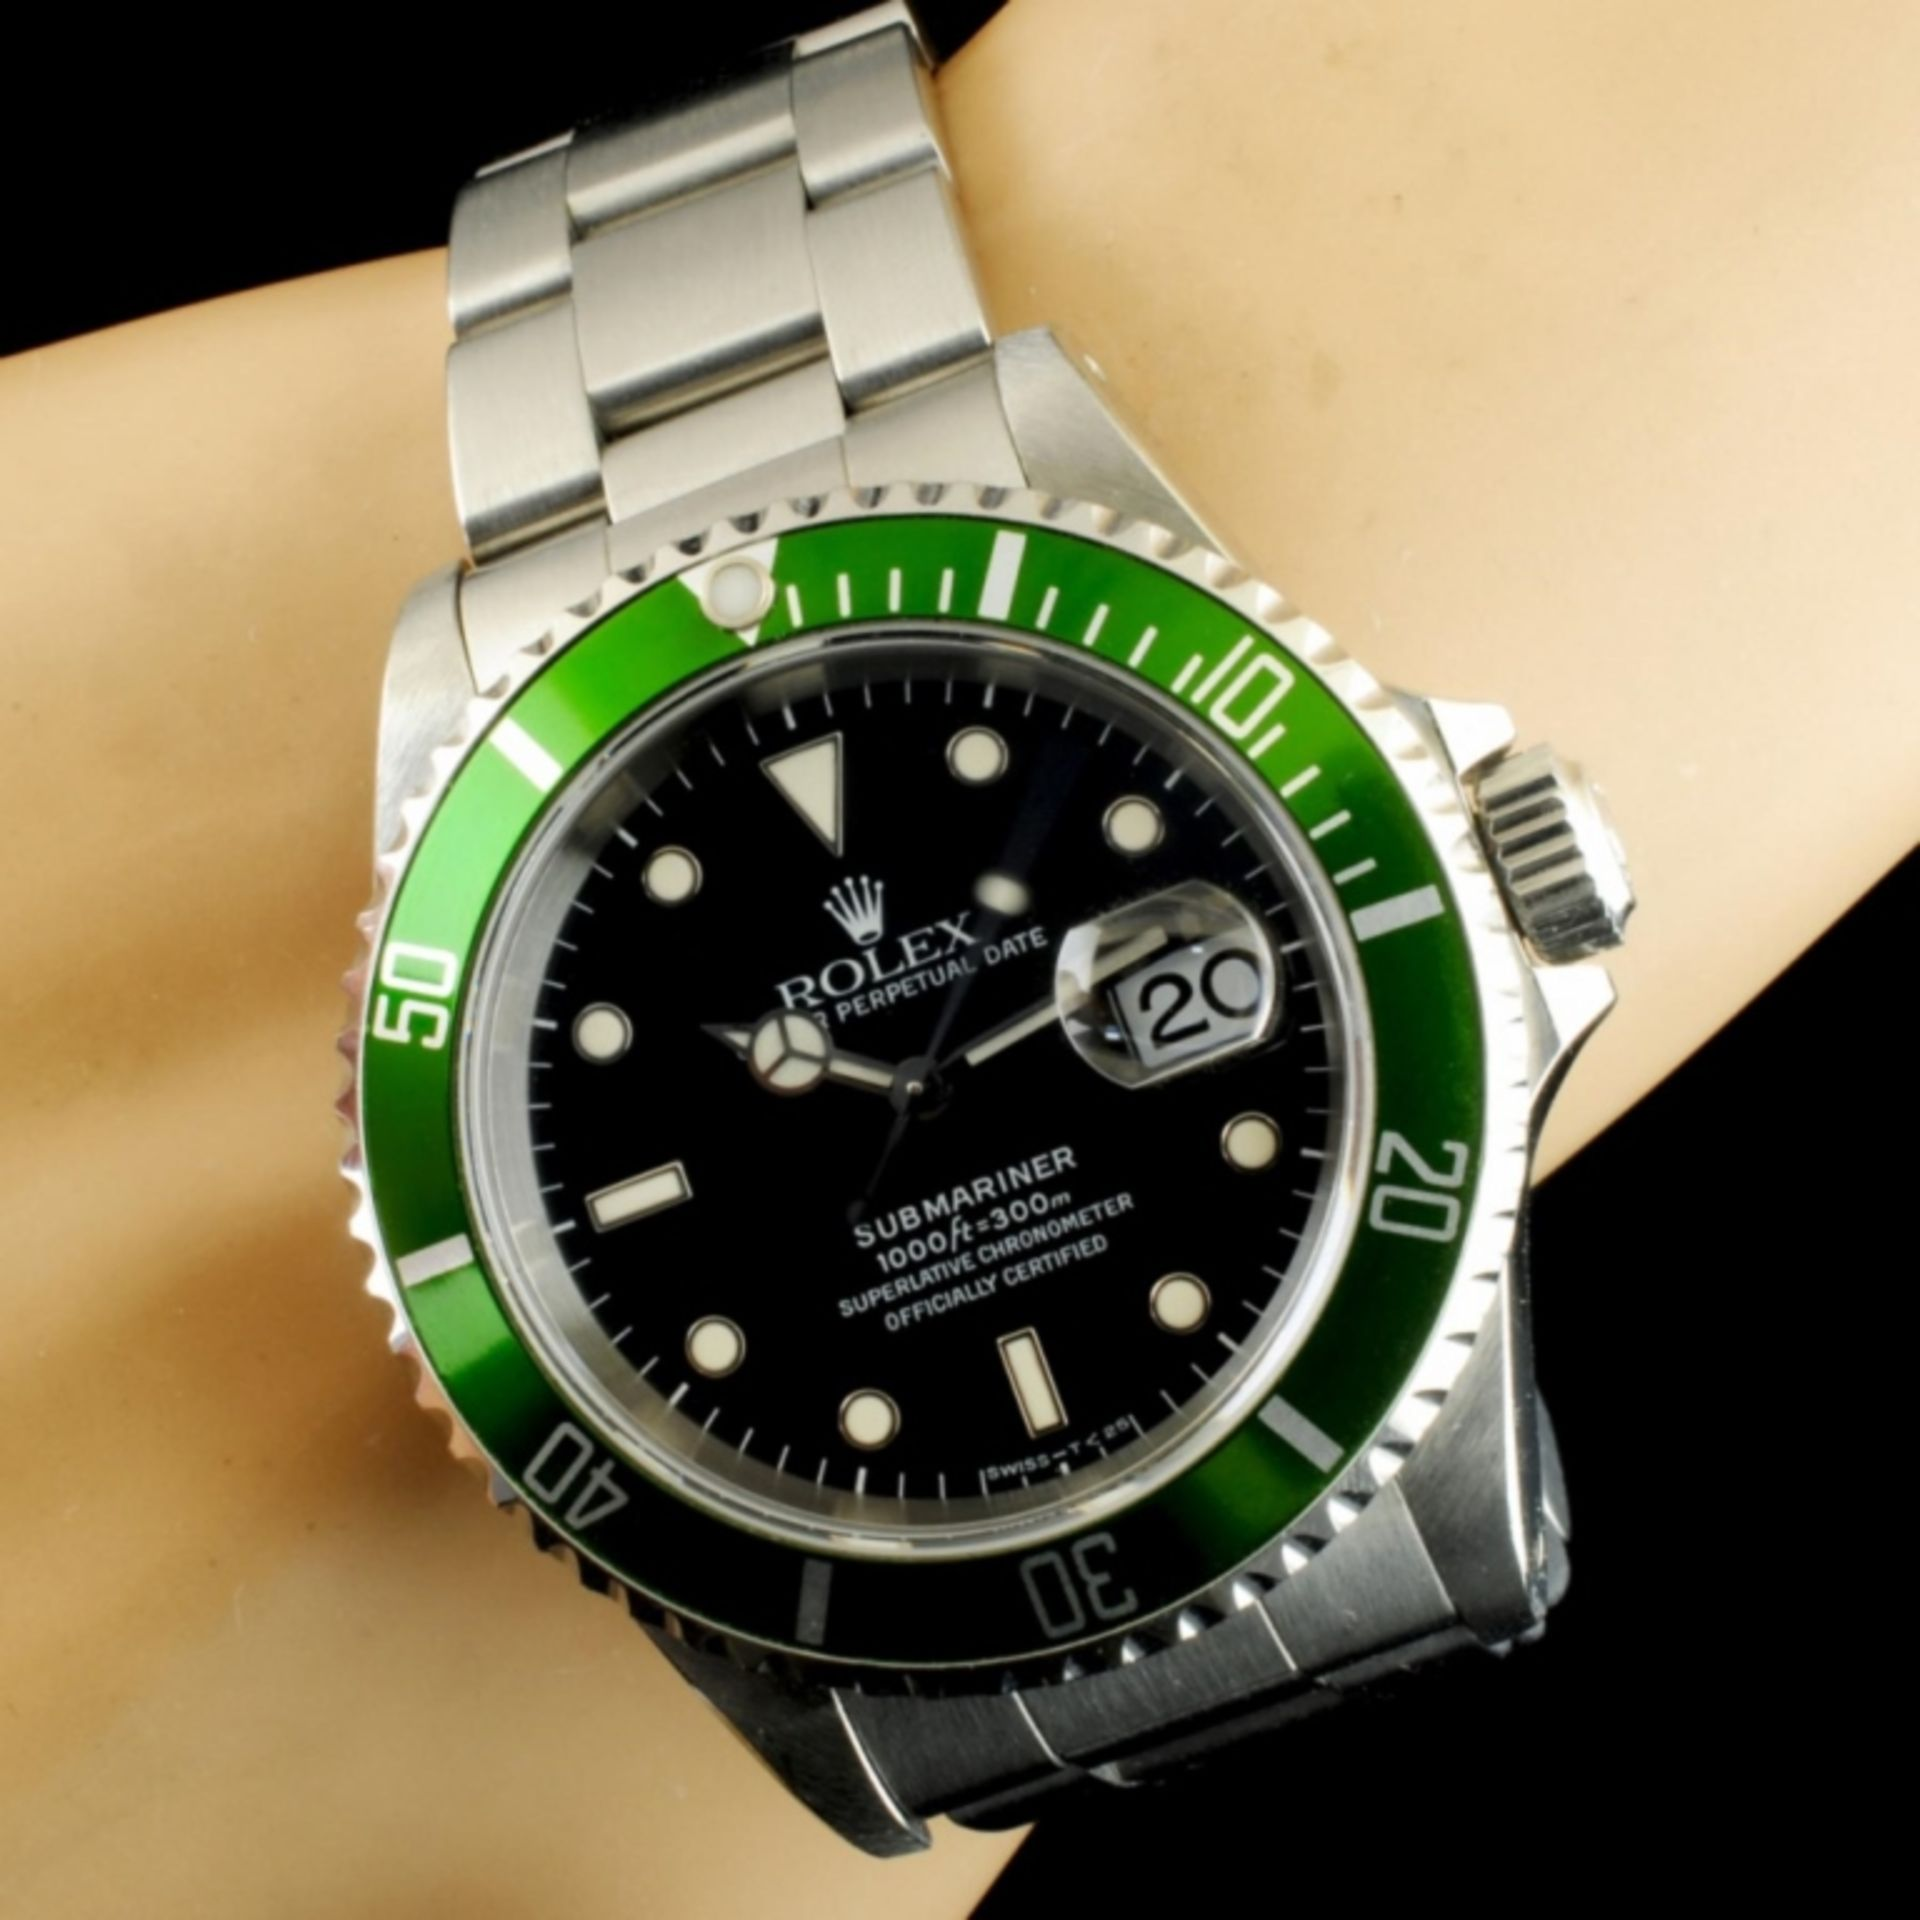 Rolex Submariner Stainless Steel 40MM Wristwatch - Image 2 of 5